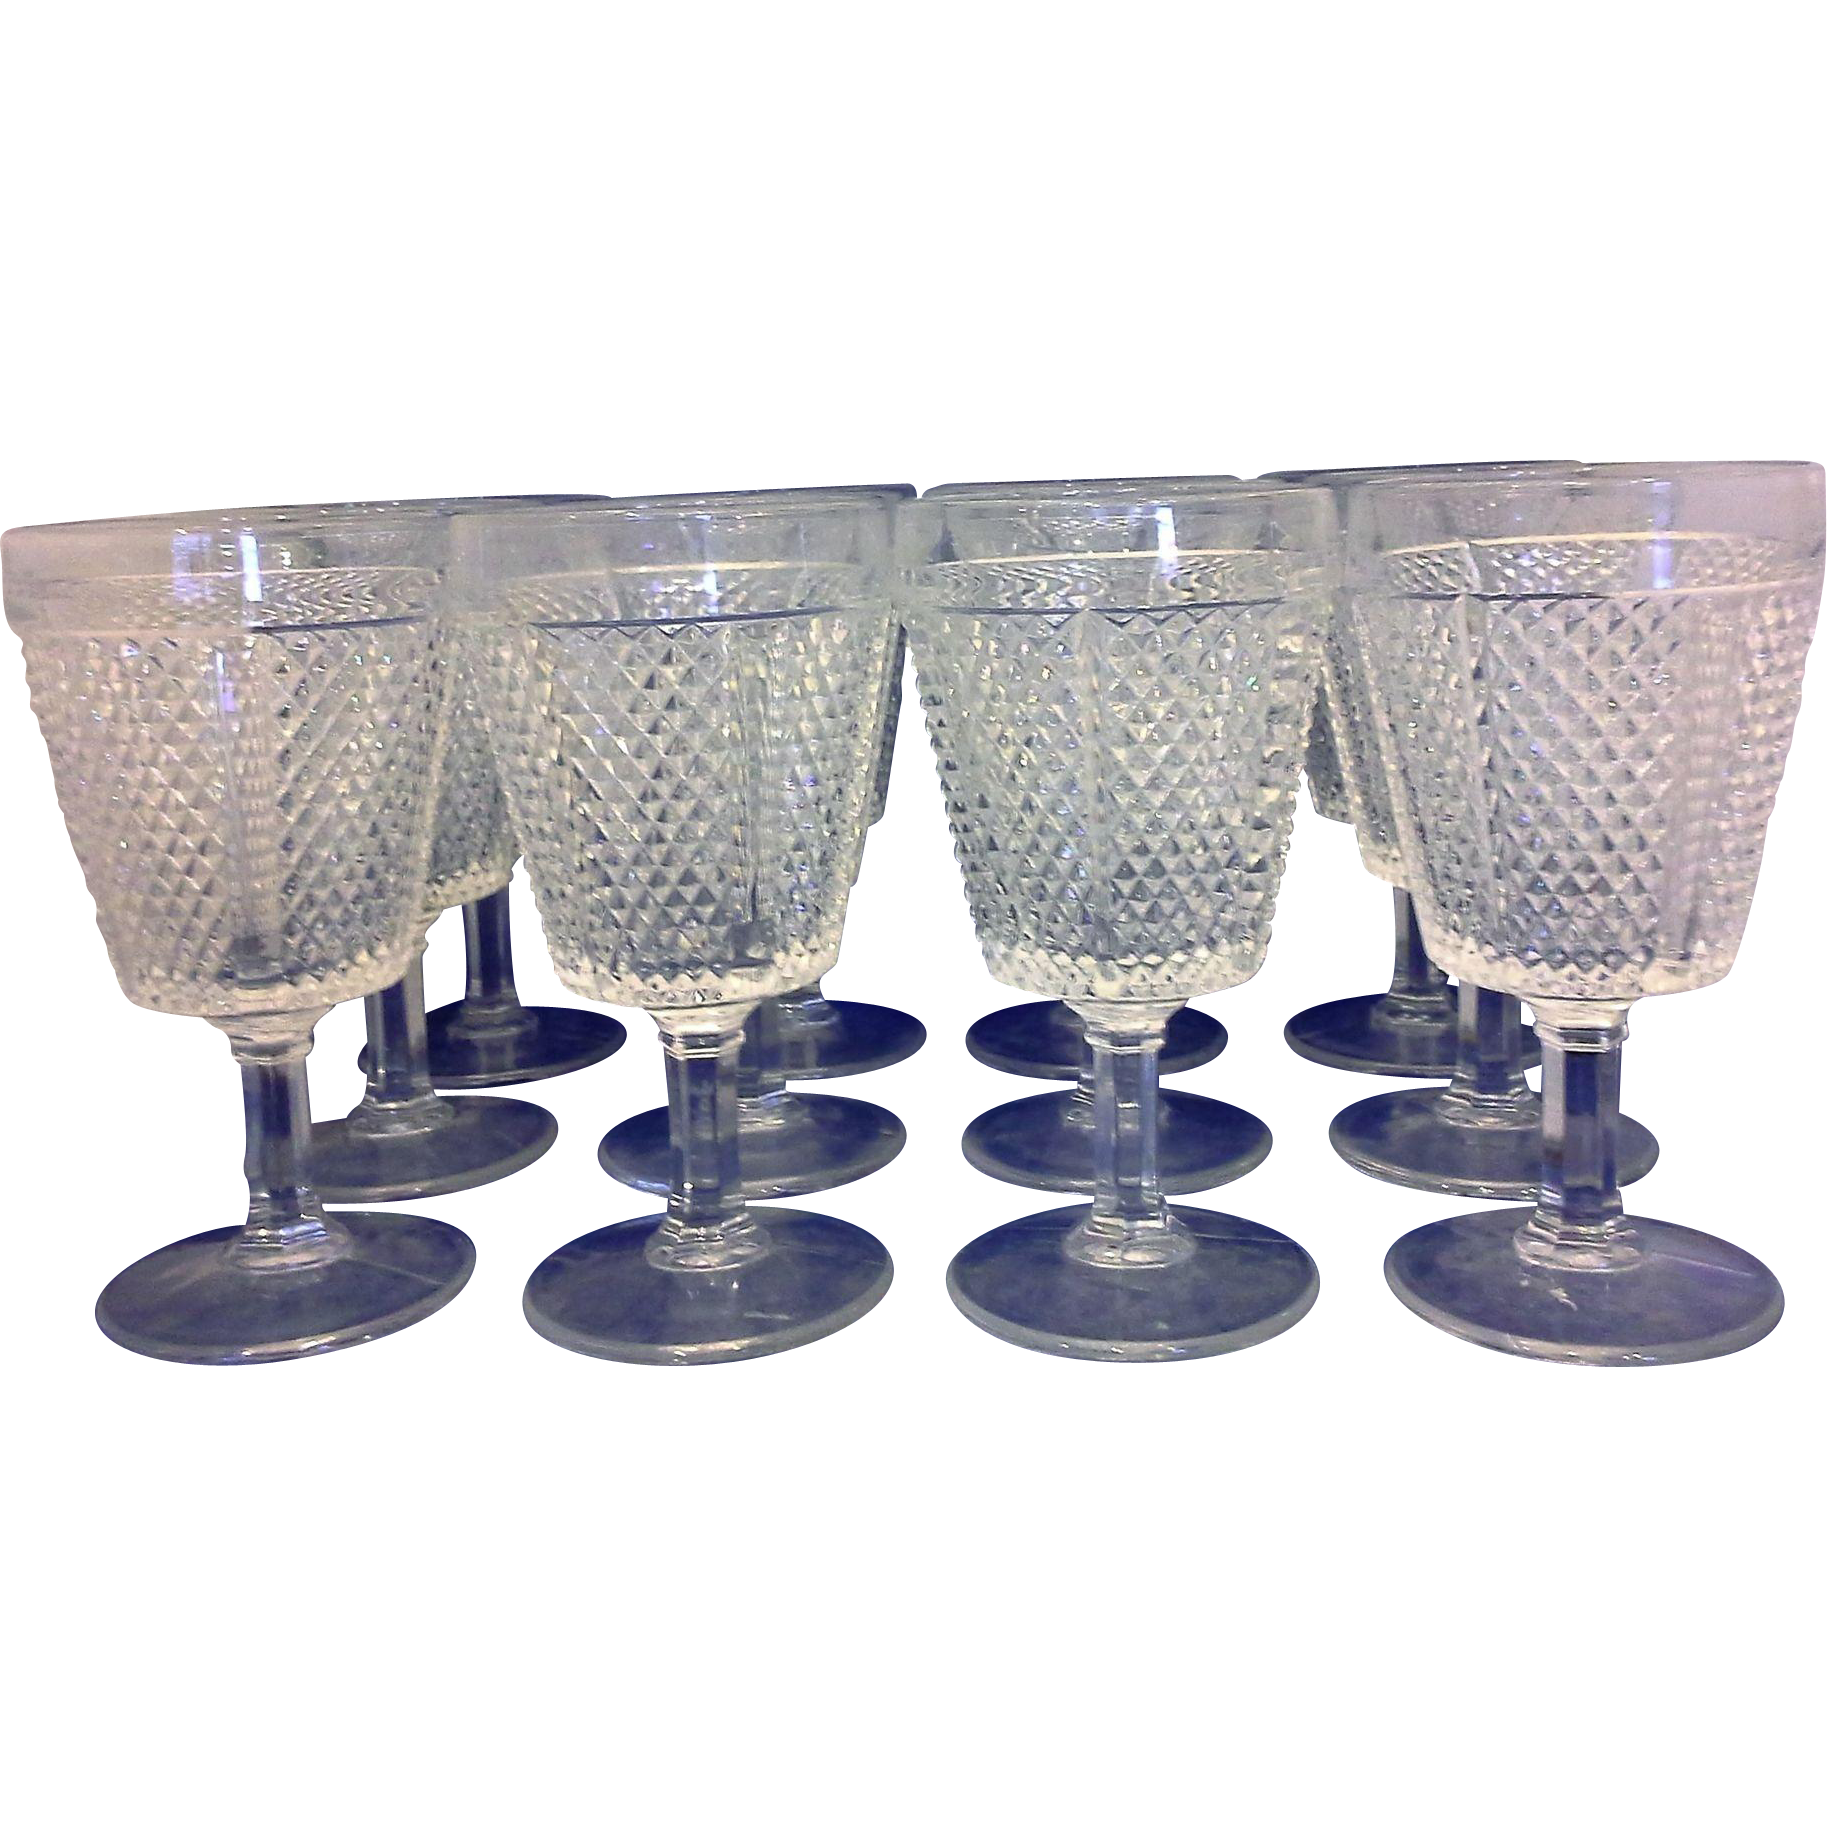 Fostoria Diamond Point Water Goblets Glasses Set of 12 - Red Tag Sale Item